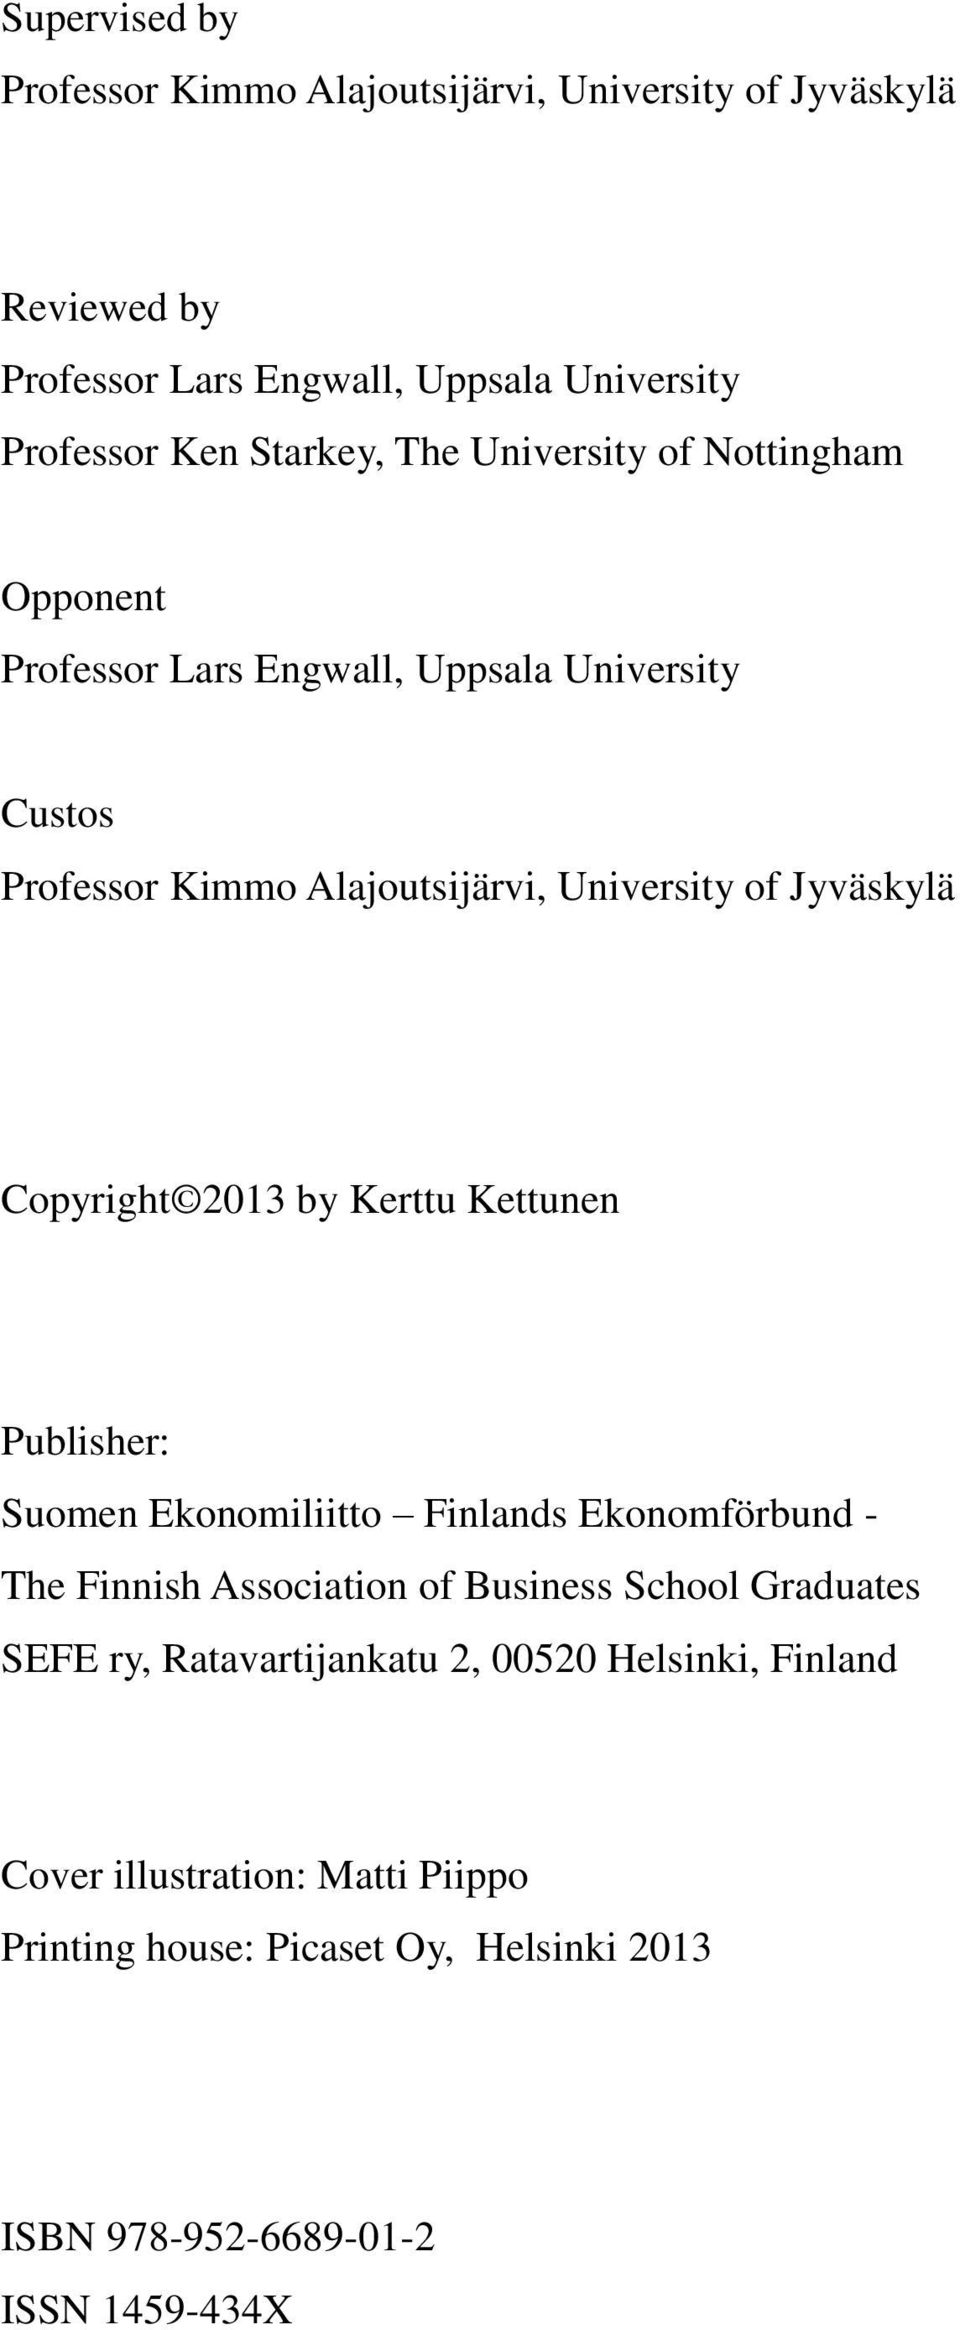 Copyright 2013 by Kerttu Kettunen Publisher: Suomen Ekonomiliitto Finlands Ekonomförbund - The Finnish Association of Business School Graduates SEFE